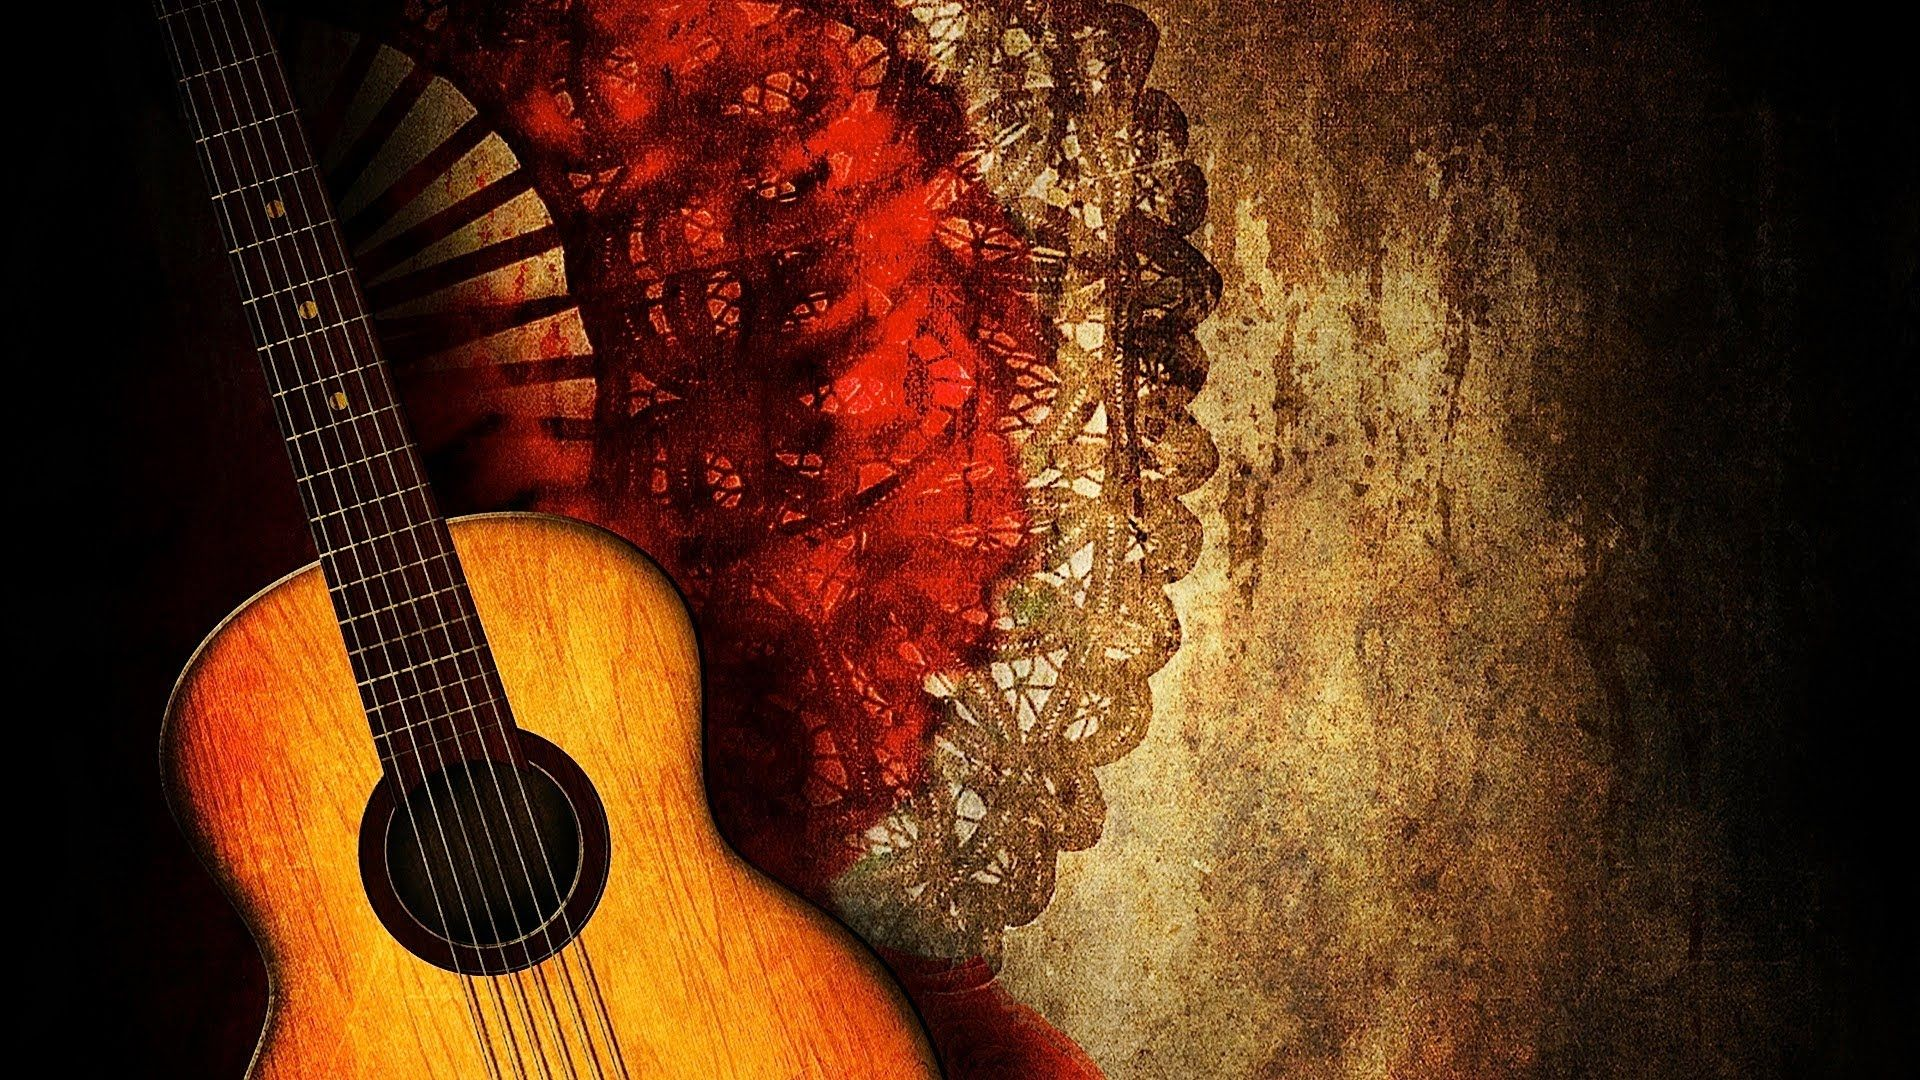 Guitar Abstract, Free Download Wallpaper